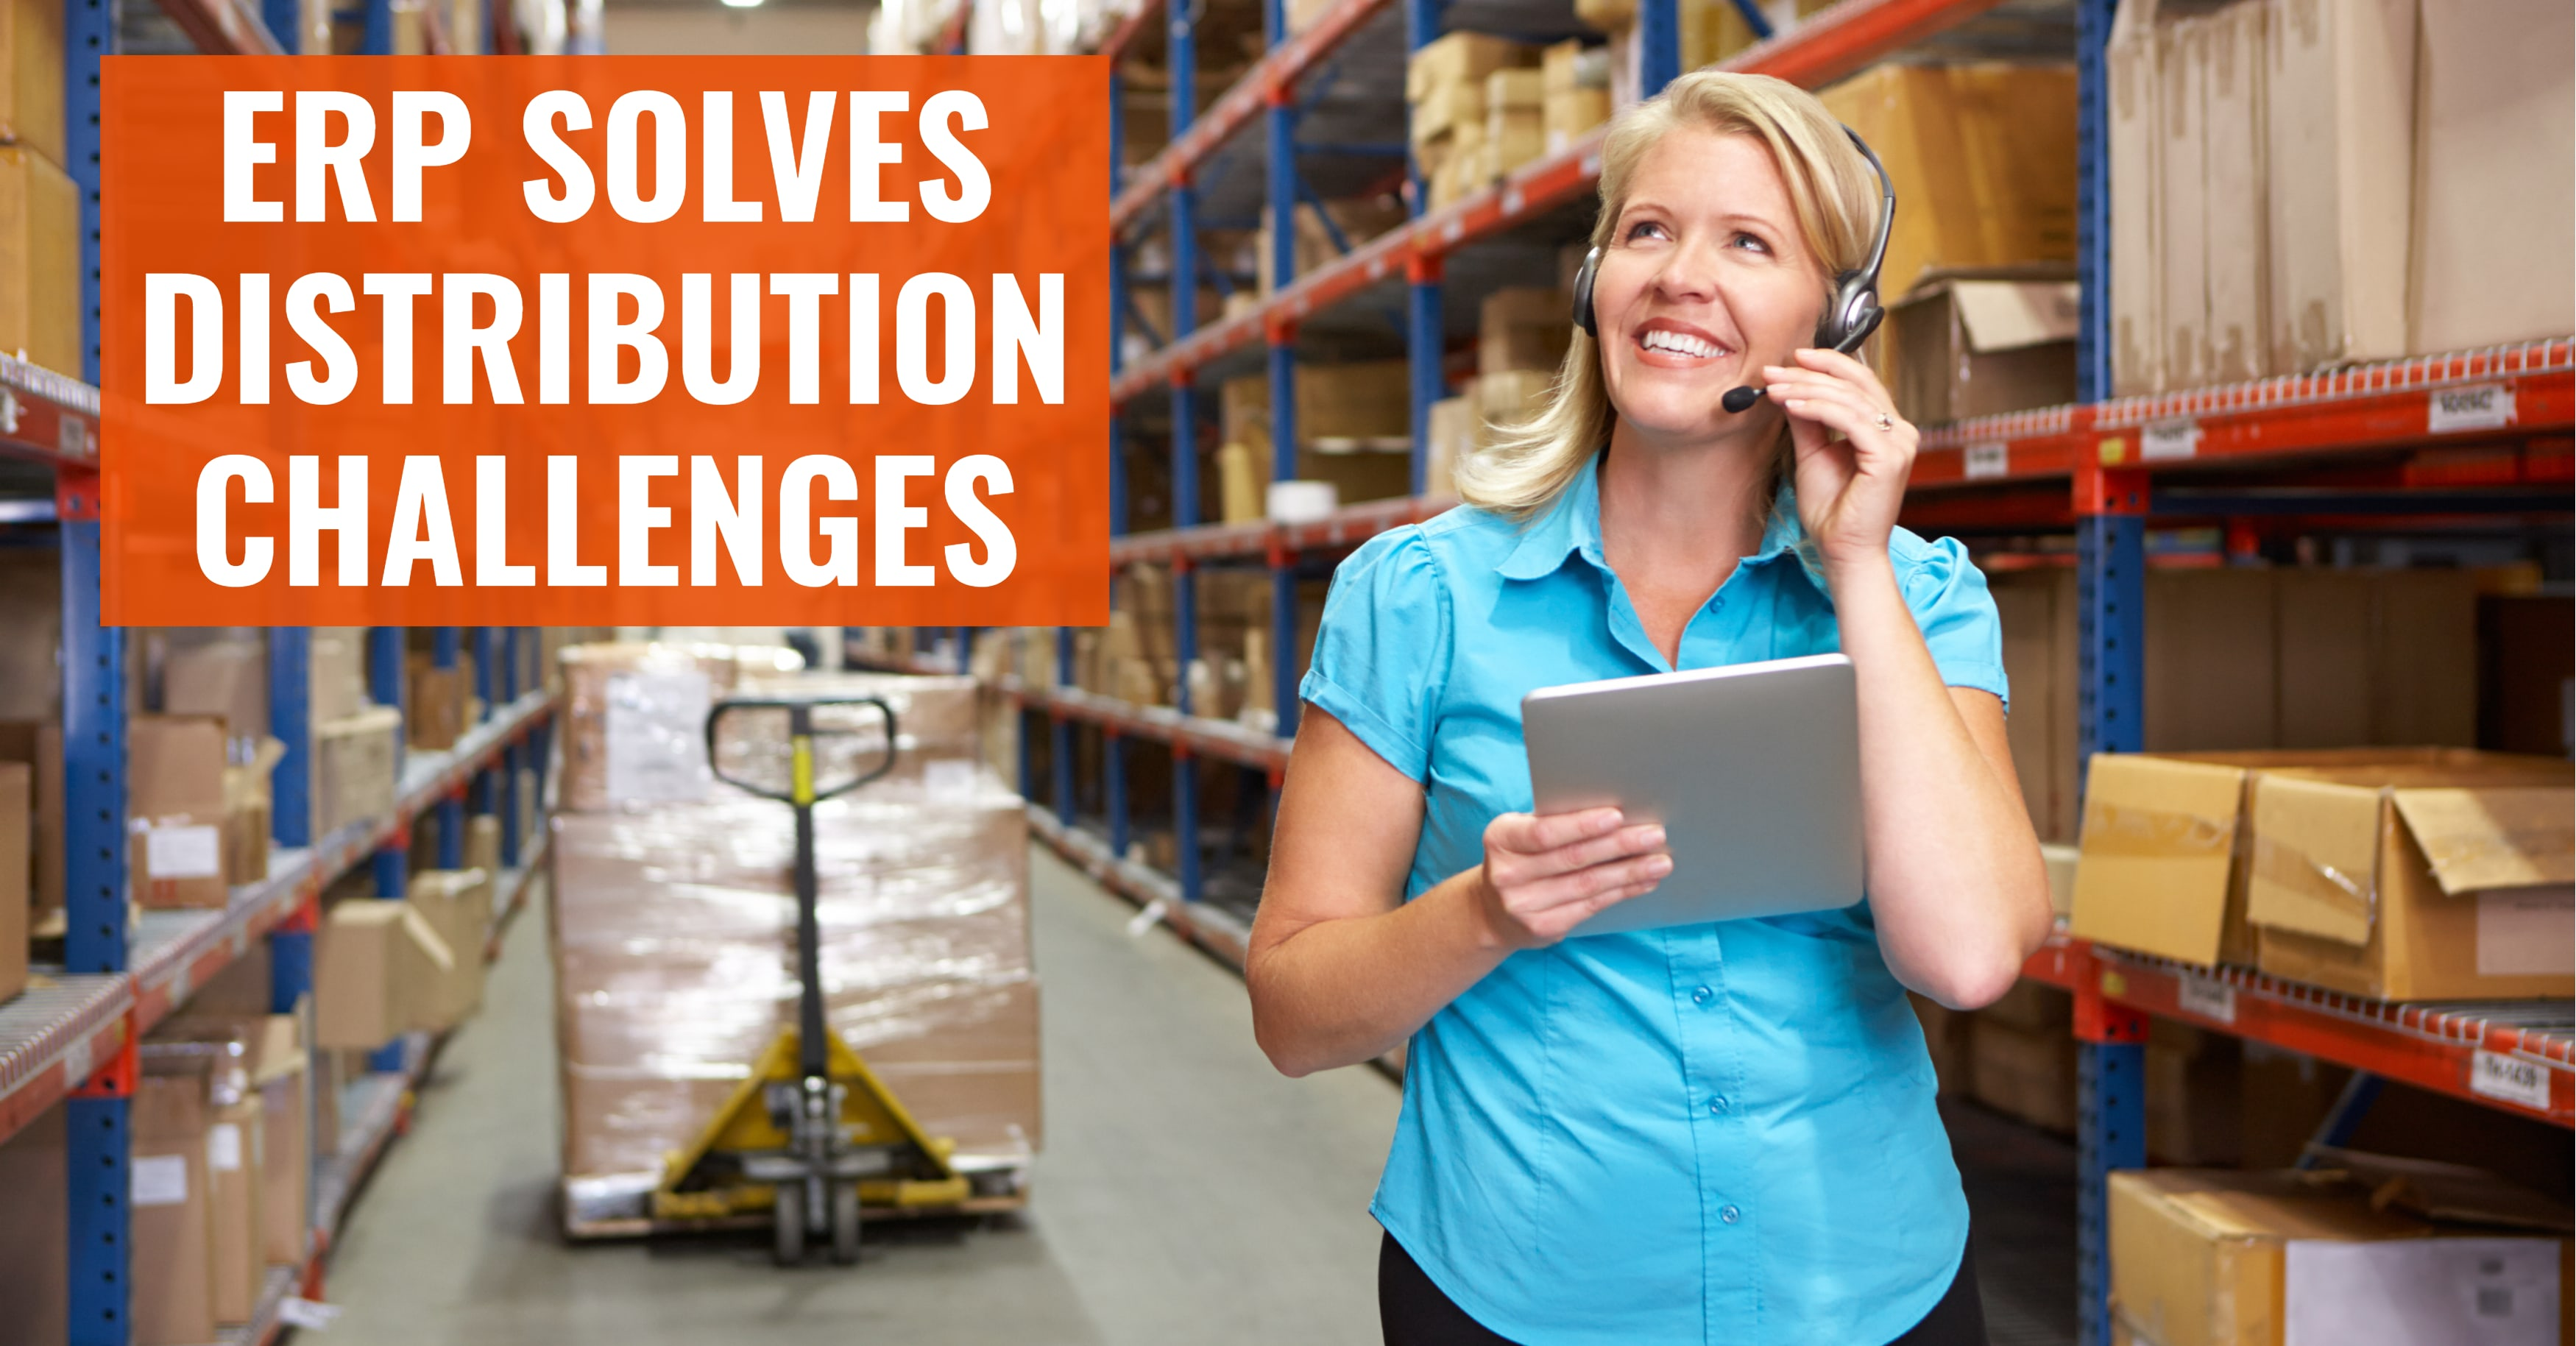 How ERP Solves Distribution Challenges